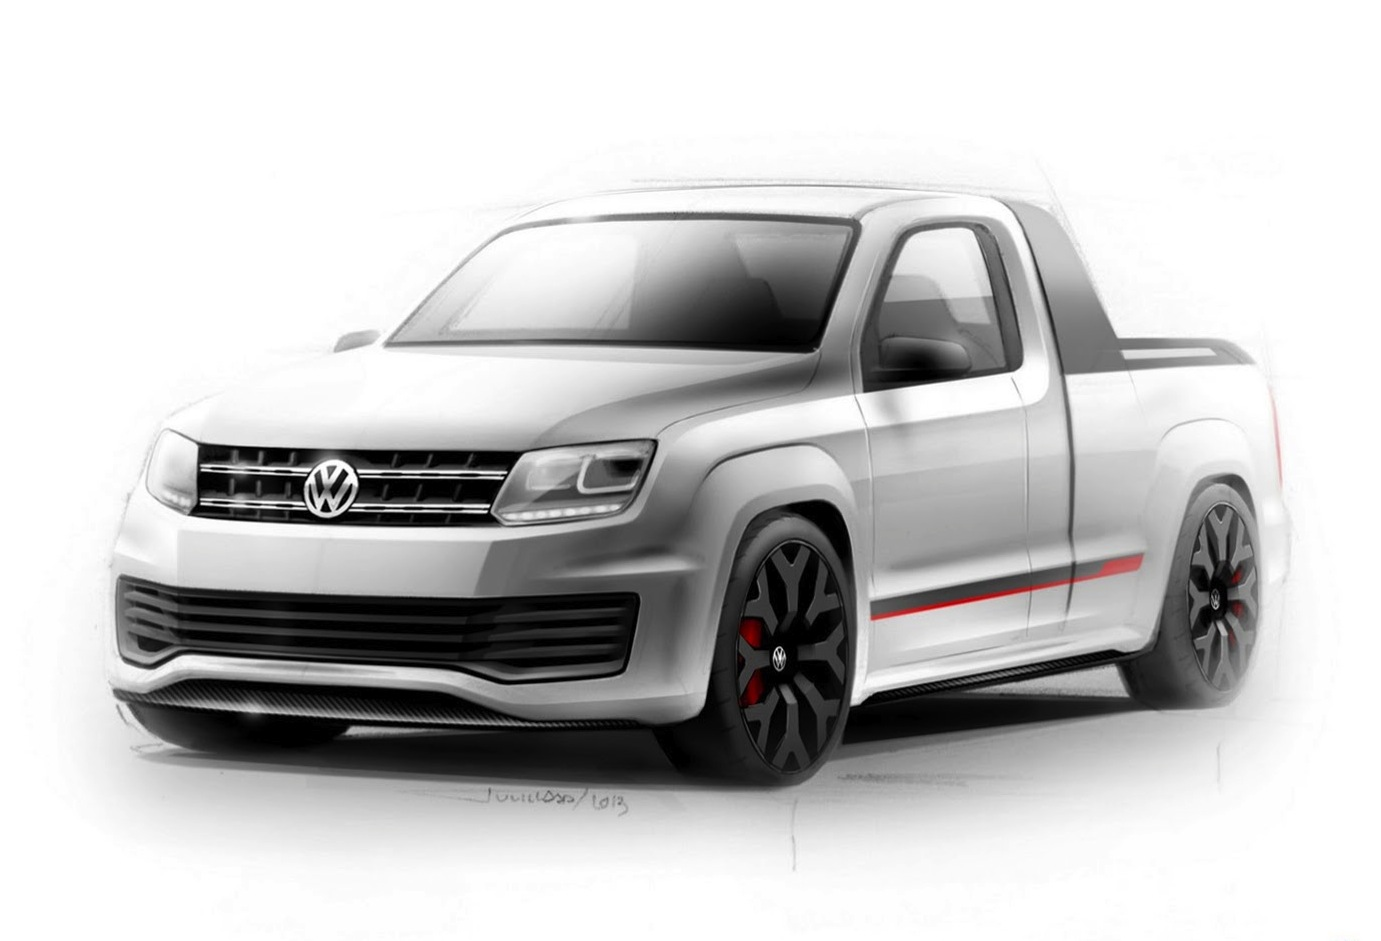 200kw volkswagen amarok r style concept headed to worthersee performancedrive. Black Bedroom Furniture Sets. Home Design Ideas